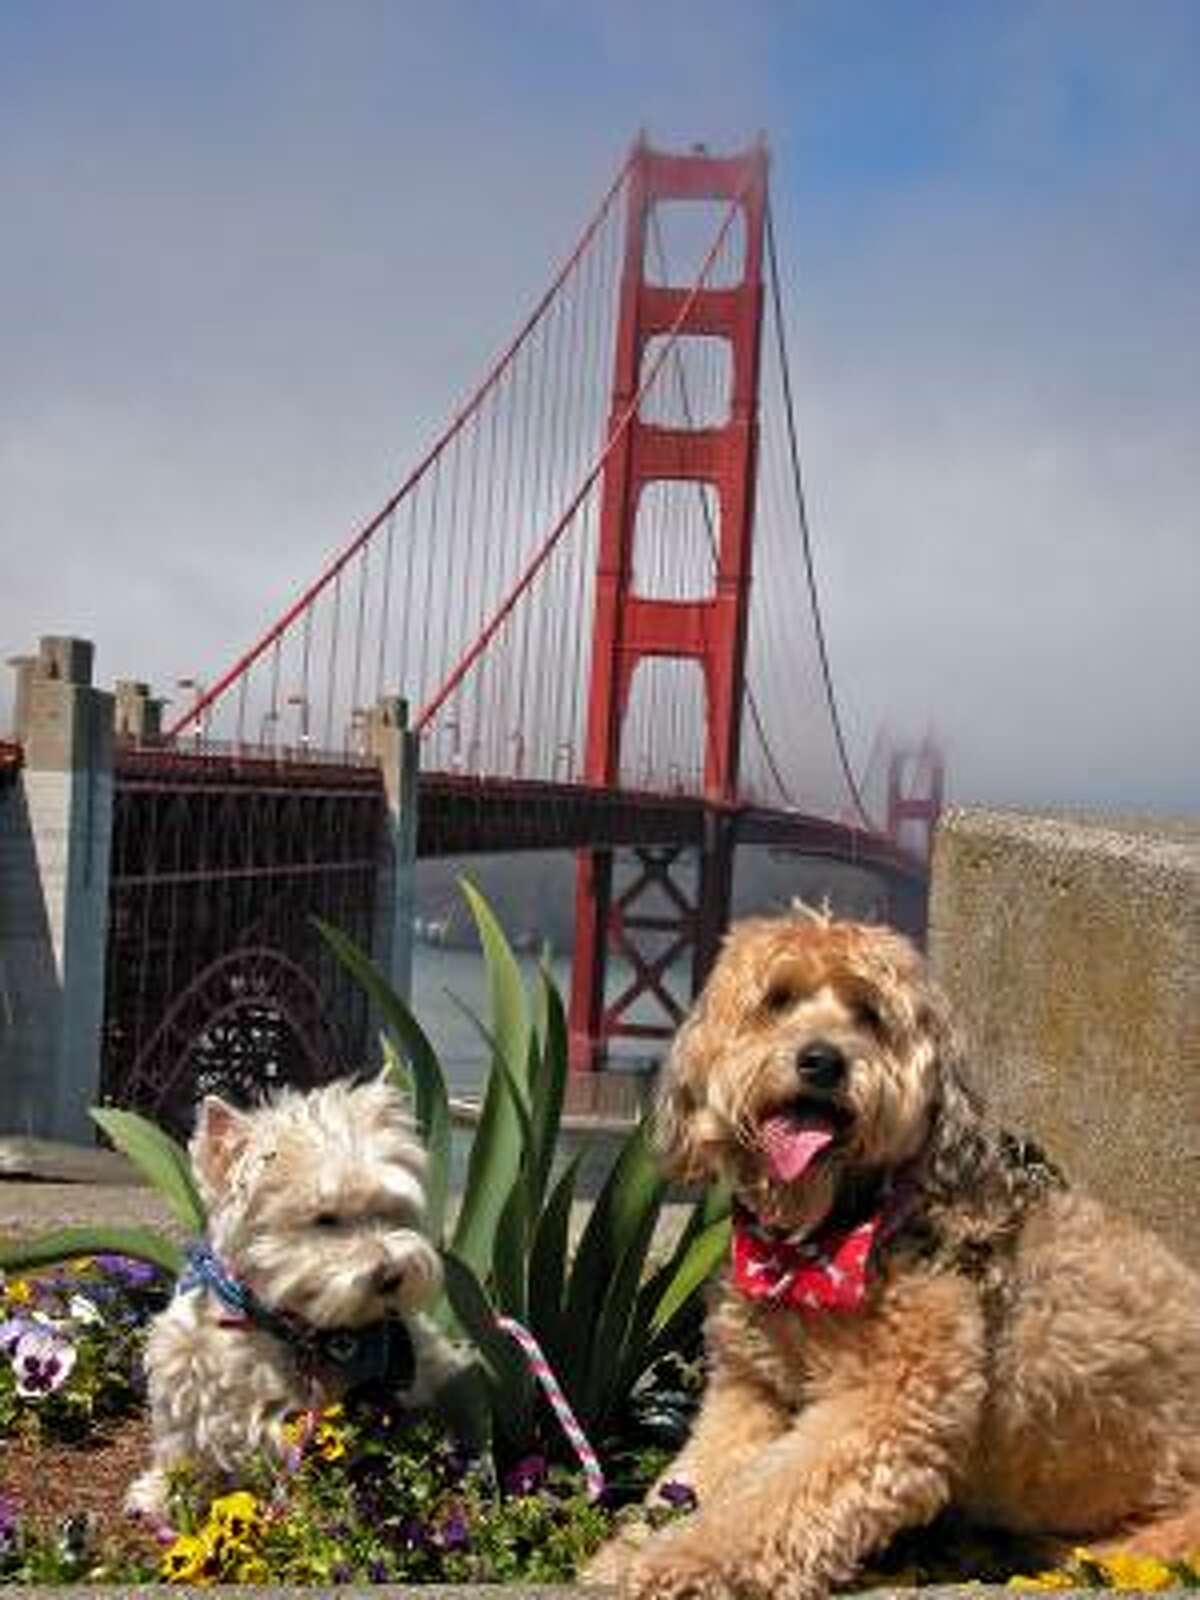 Bonnie and Darby relax after a morning stroll across the Golden Gate Bridge in San Francisco.